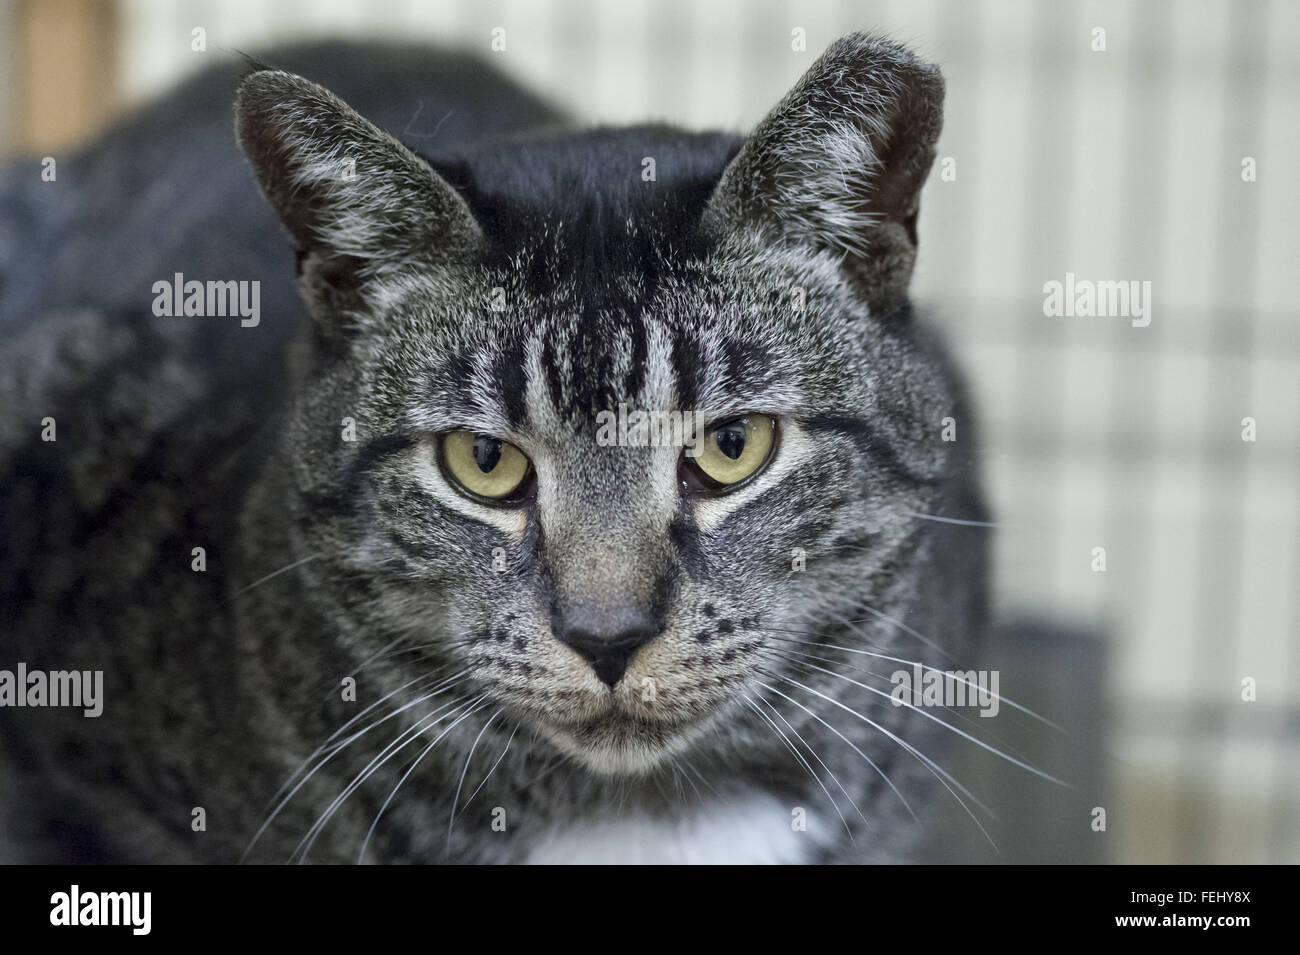 Wantagh, New York, USA. 7th Feb, 2016. Woodbury, a friendly tabby cat, is available for adoption during Last Hope - Stock Image